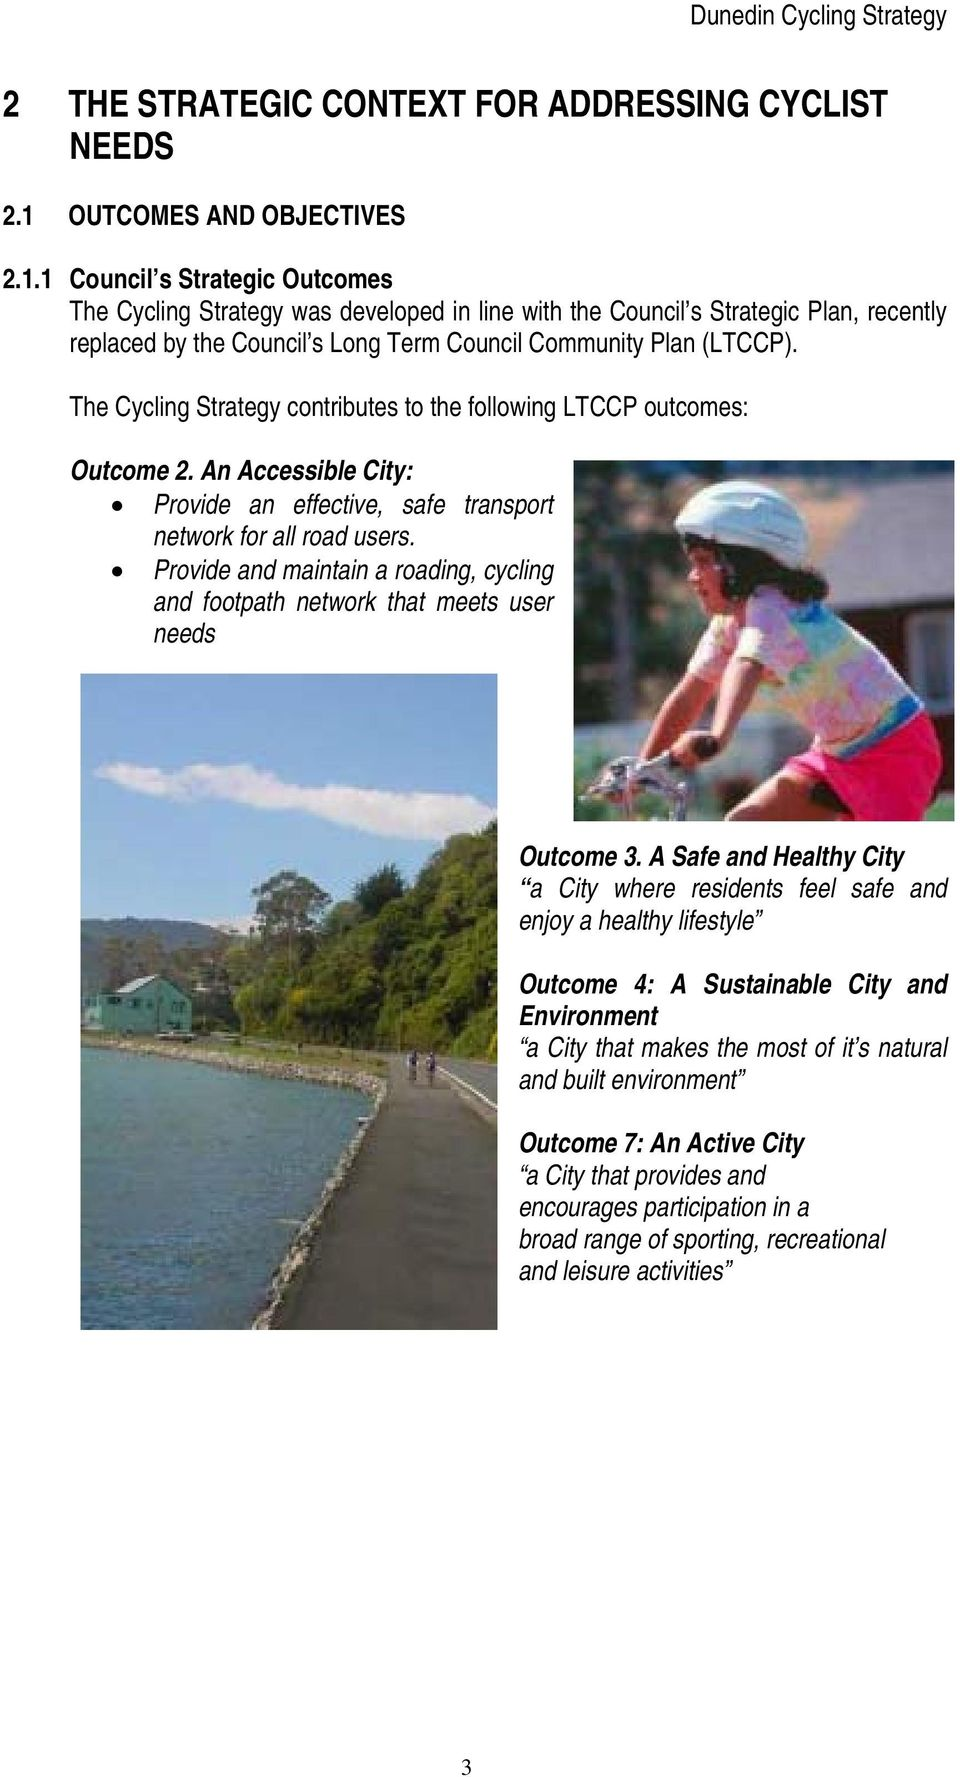 1 Council s Strategic Outcomes The Cycling Strategy was developed in line with the Council s Strategic Plan, recently replaced by the Council s Long Term Council Community Plan (LTCCP).